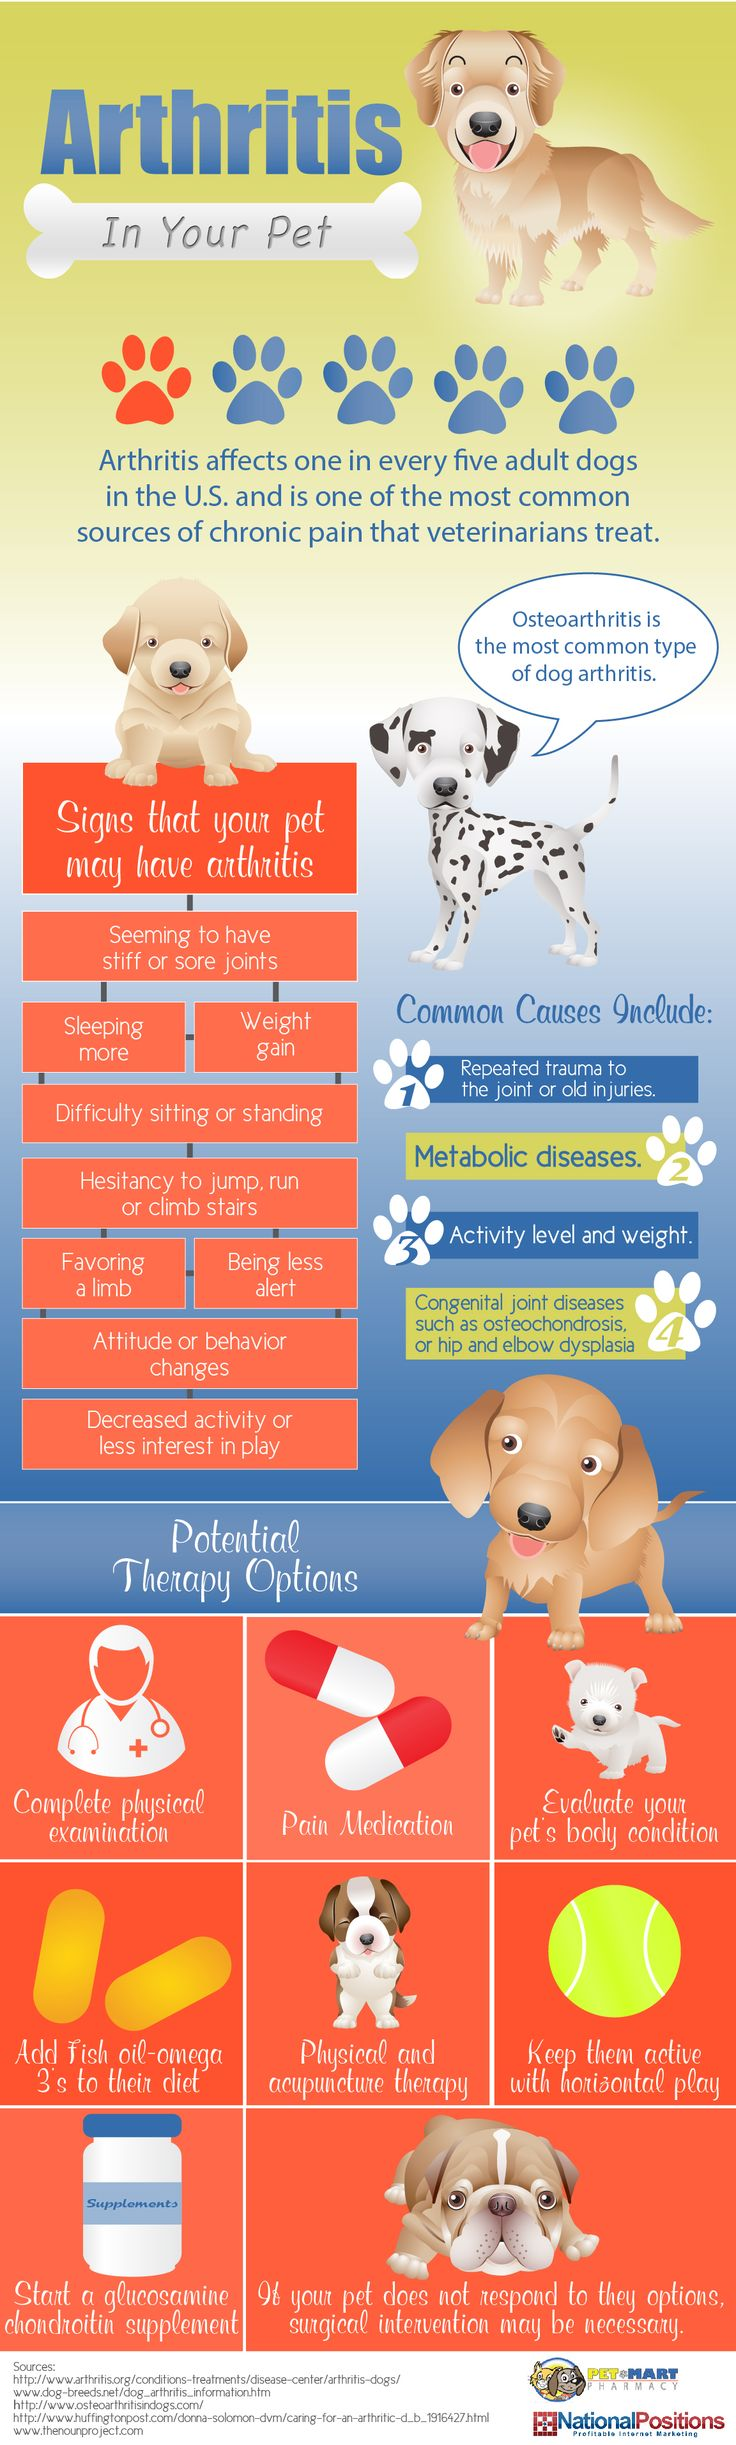 5 Easy Dog Arthritis Supplement Hacks Proven By Science | Pet-Plicity